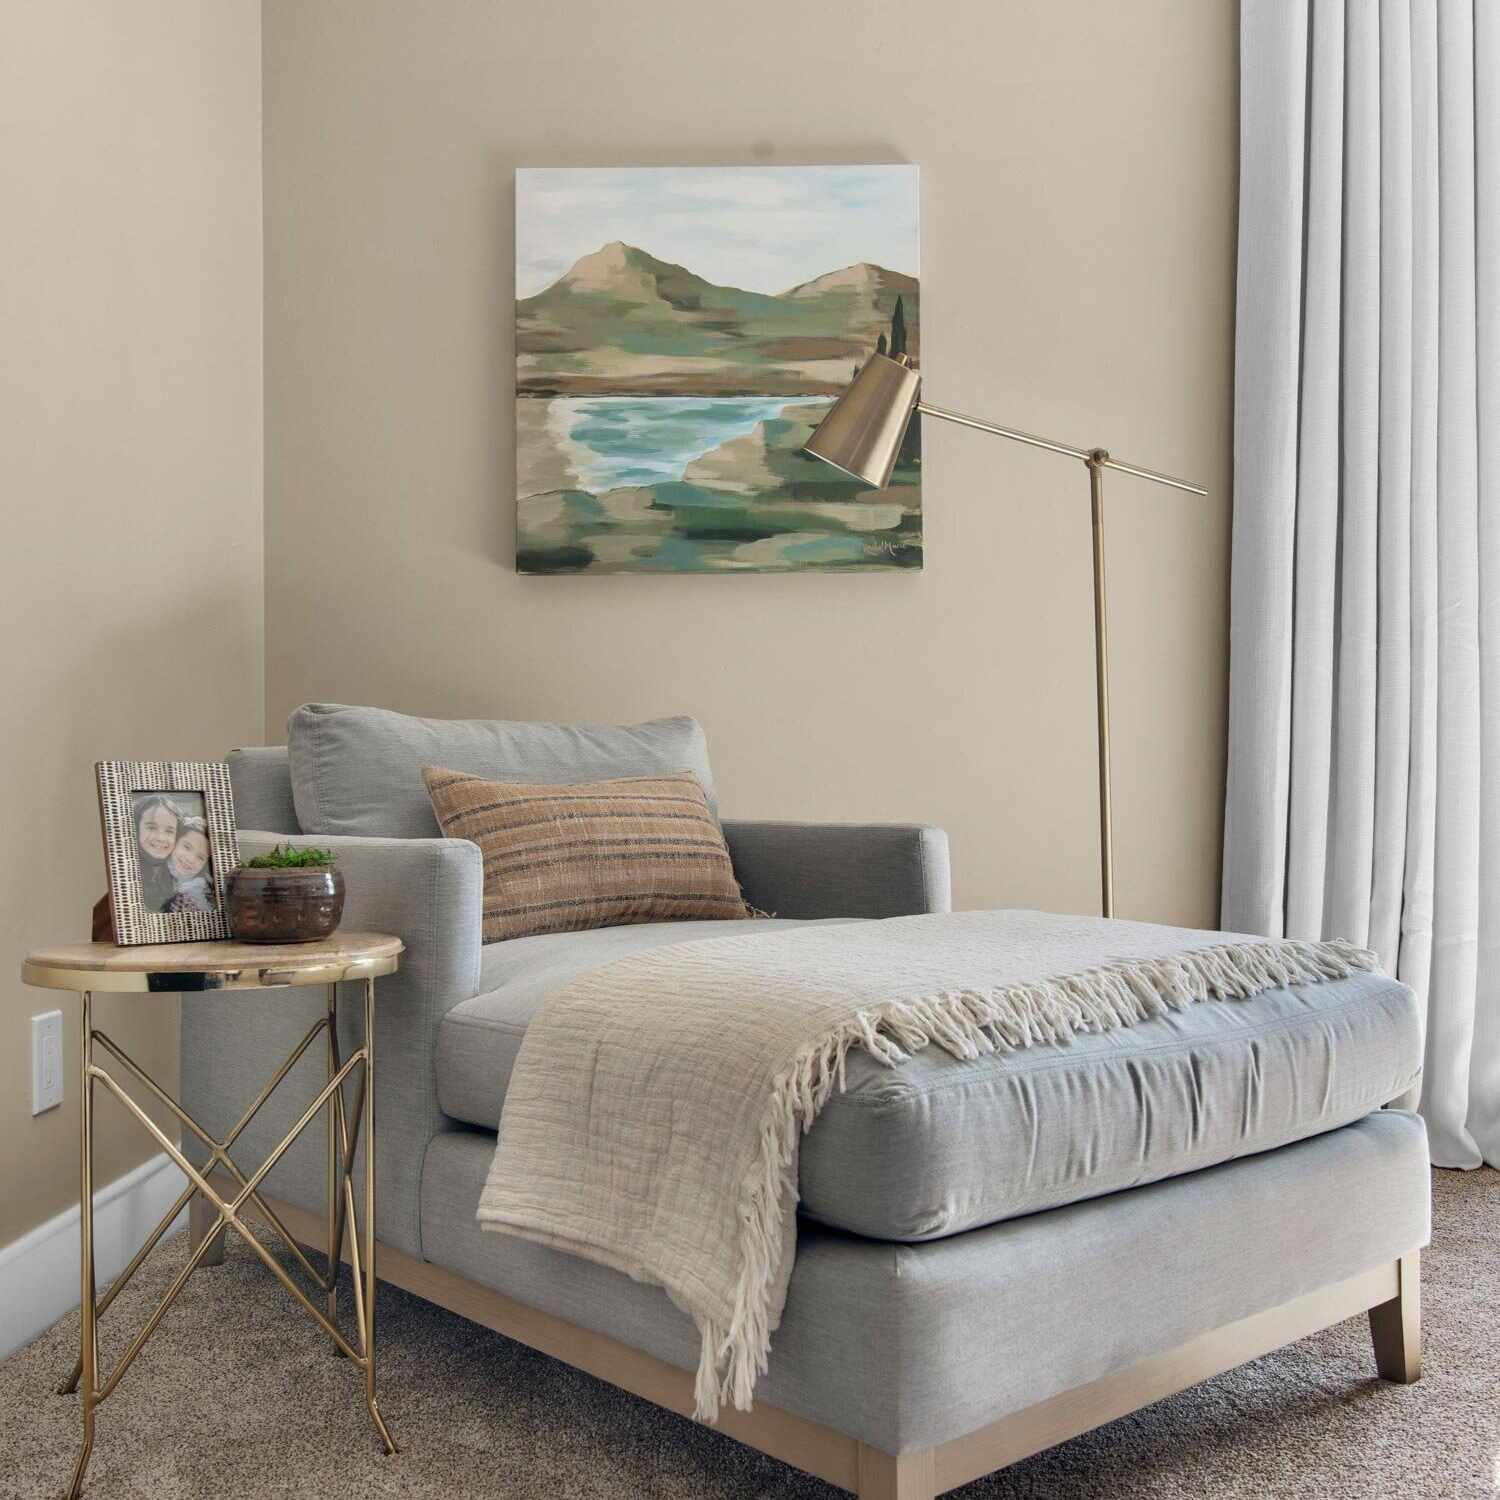 gray chaise lounger with golden metal accent table beside it, painting hanging above